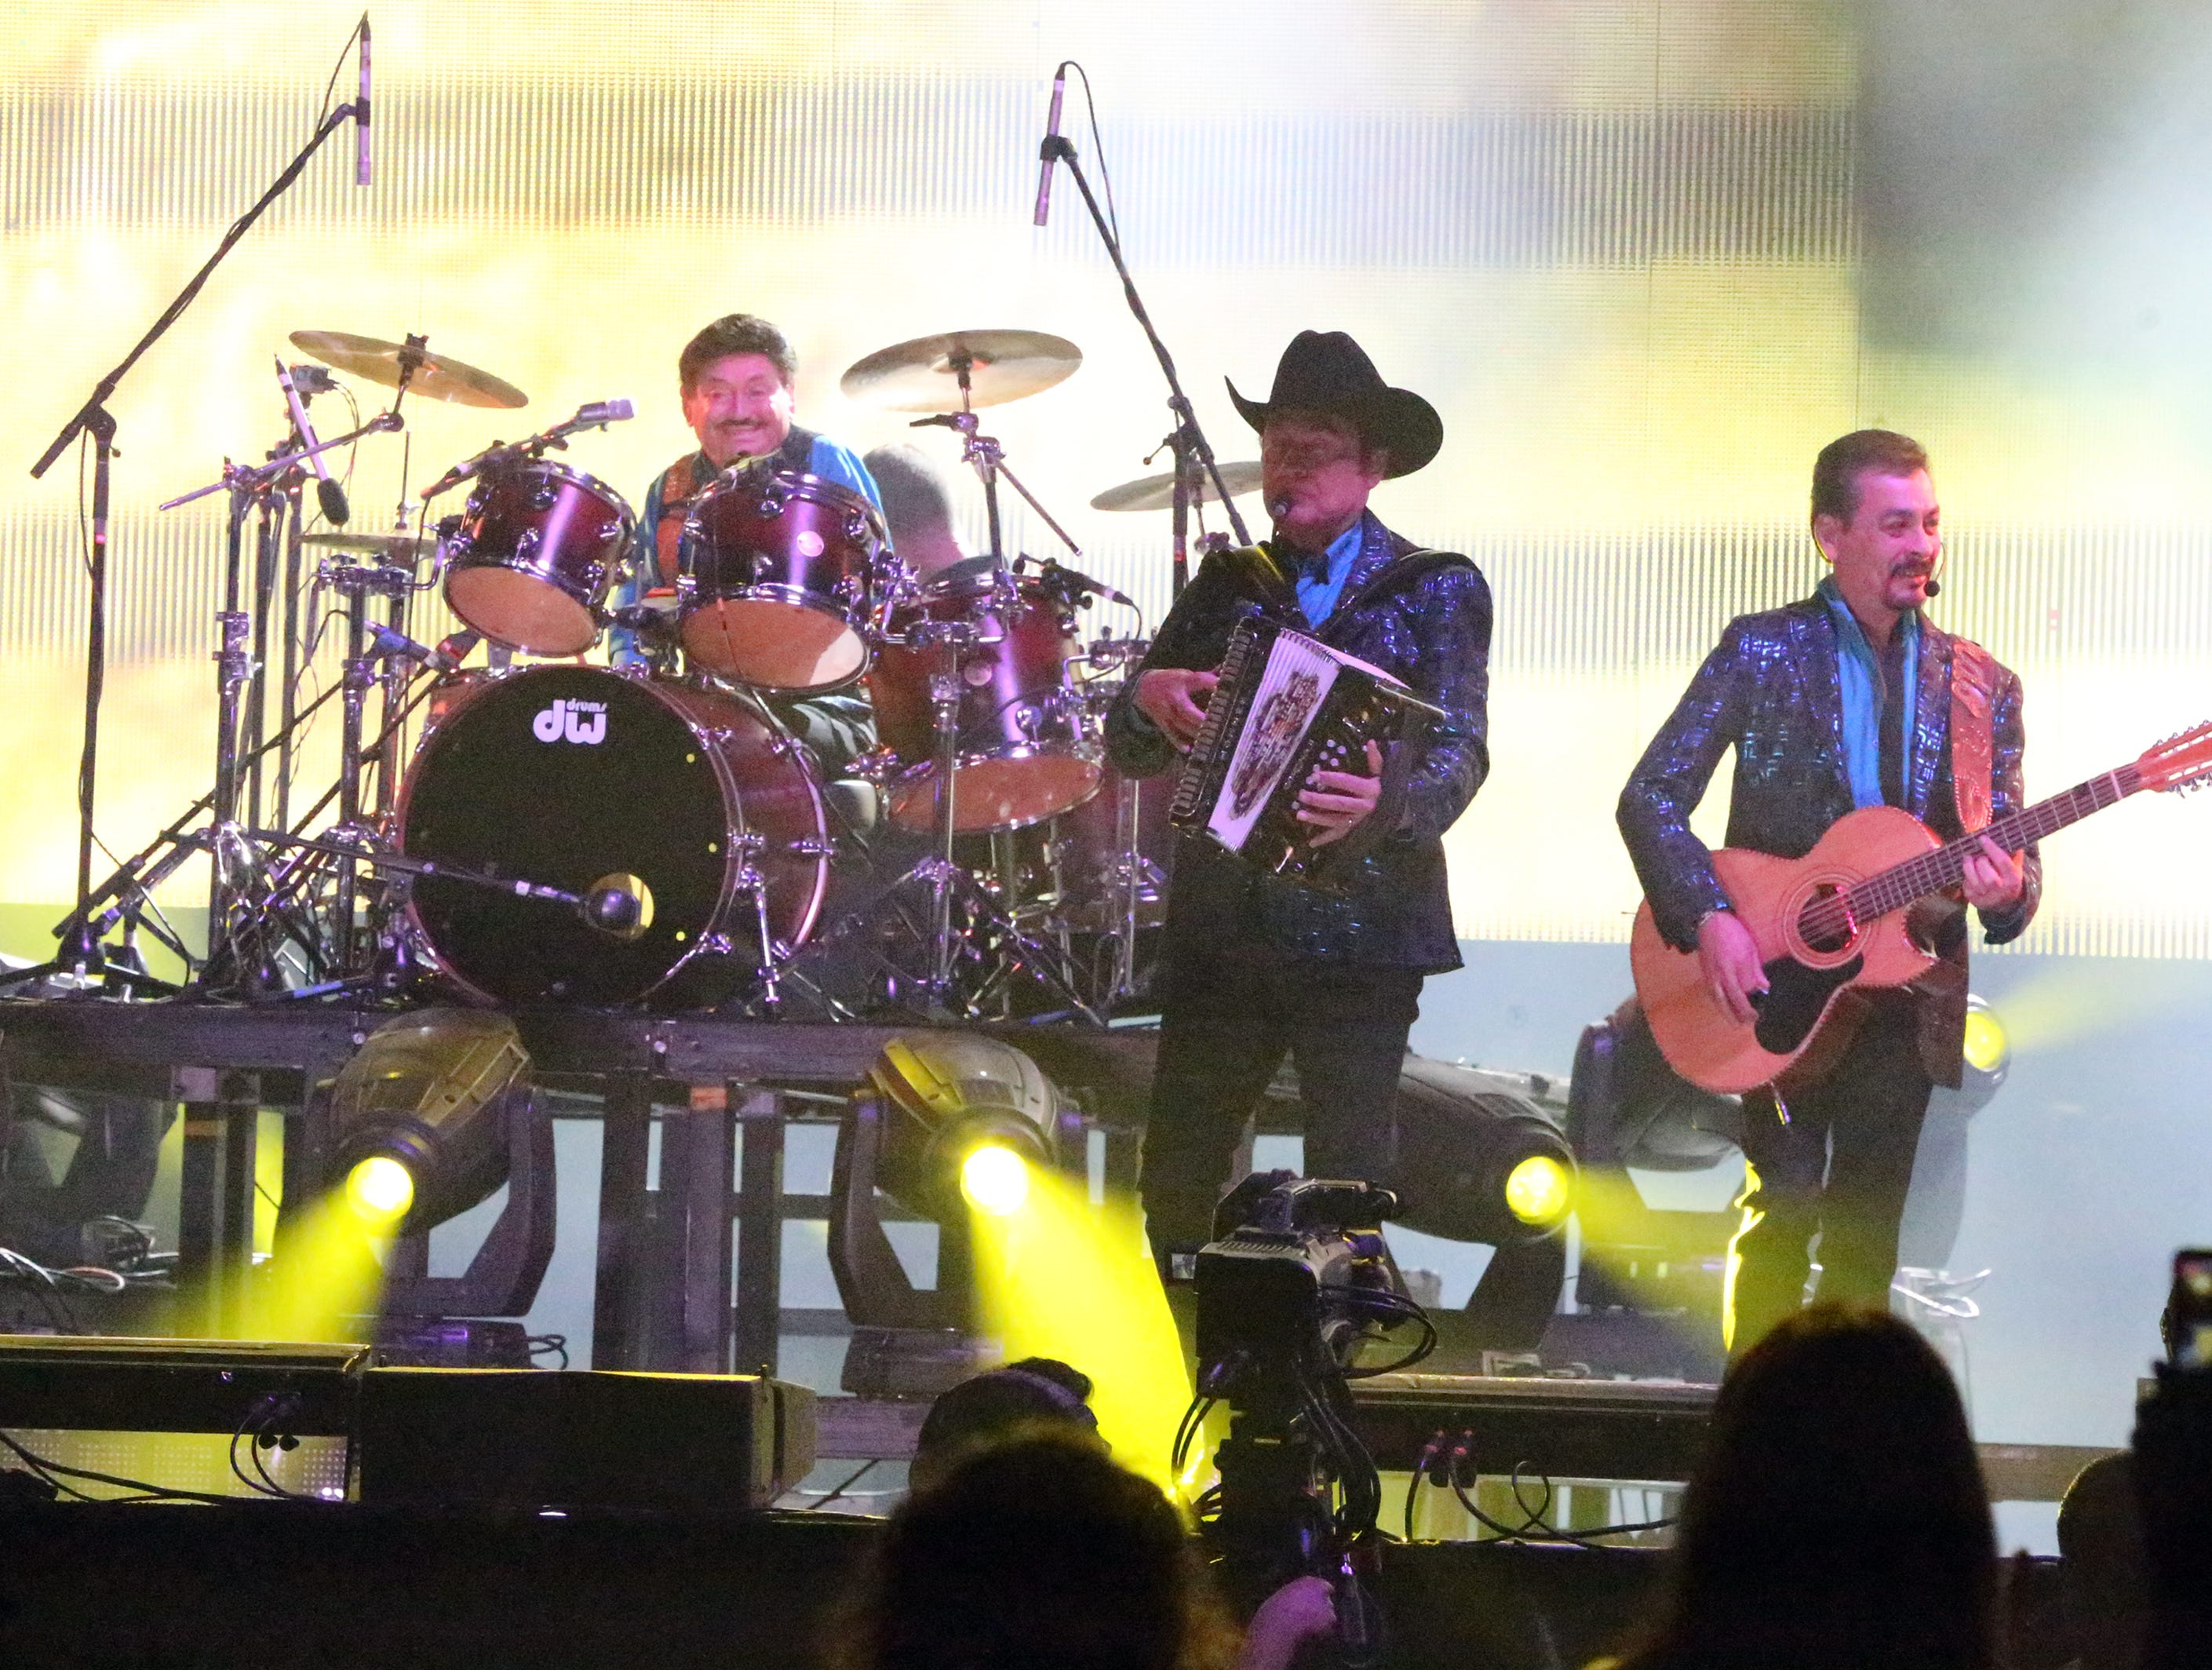 Veteran norteño group Los Tigres del Norte performed for a near capacity crowd along with Latin Superstar Alejandro Fernandez Saturday night in the Don Haskins Center.